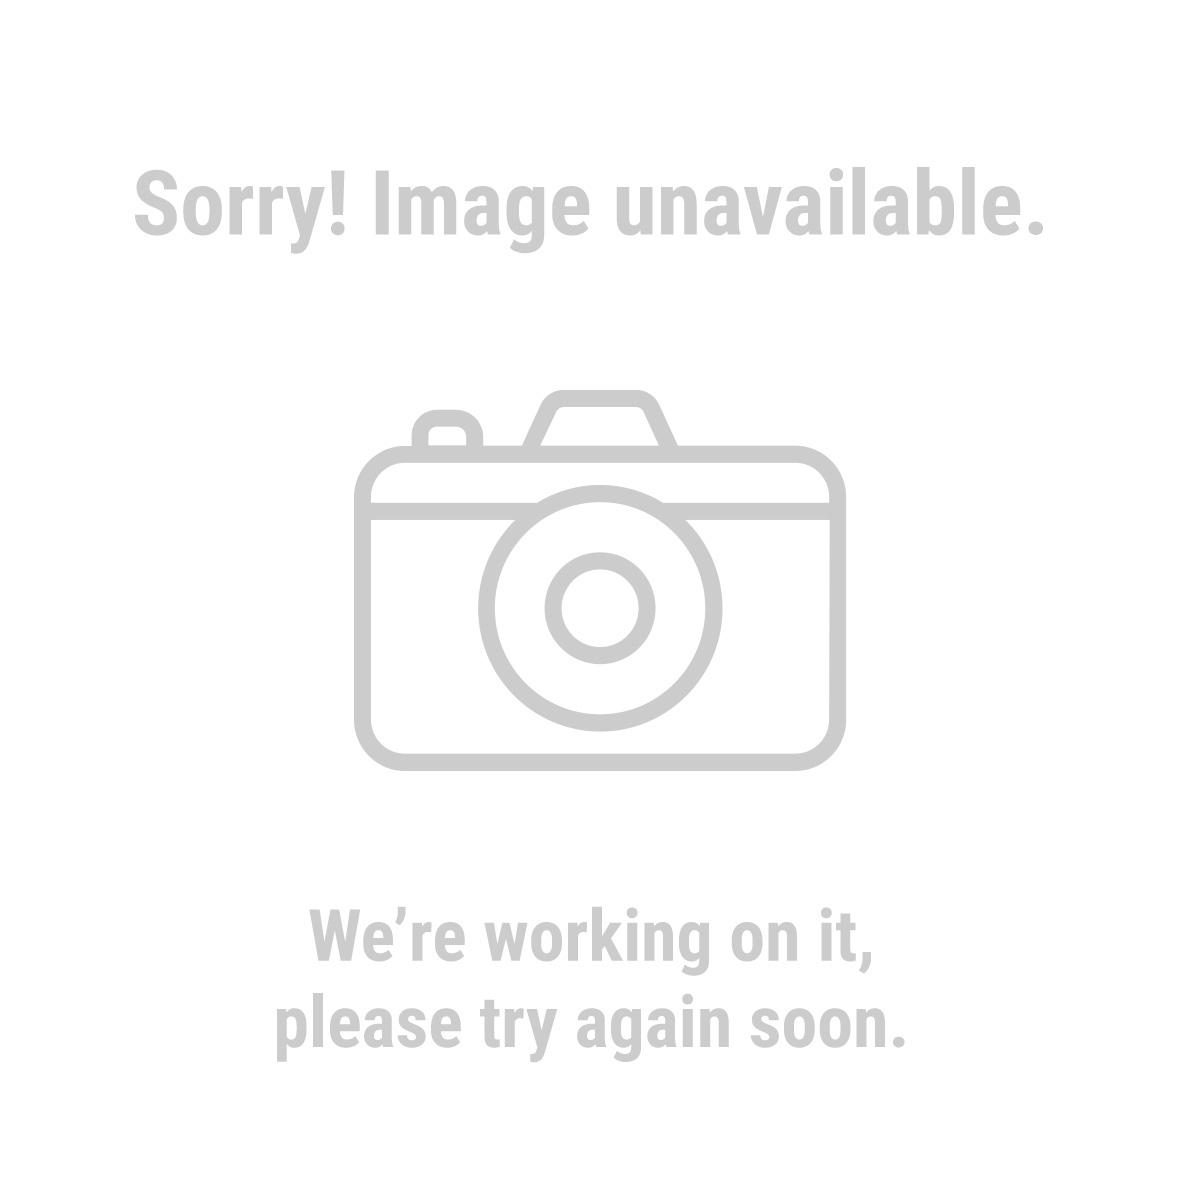 Central Pneumatic 61489 29 gal. 2 HP 150 PSI Cast Iron Vertical Air Compressor